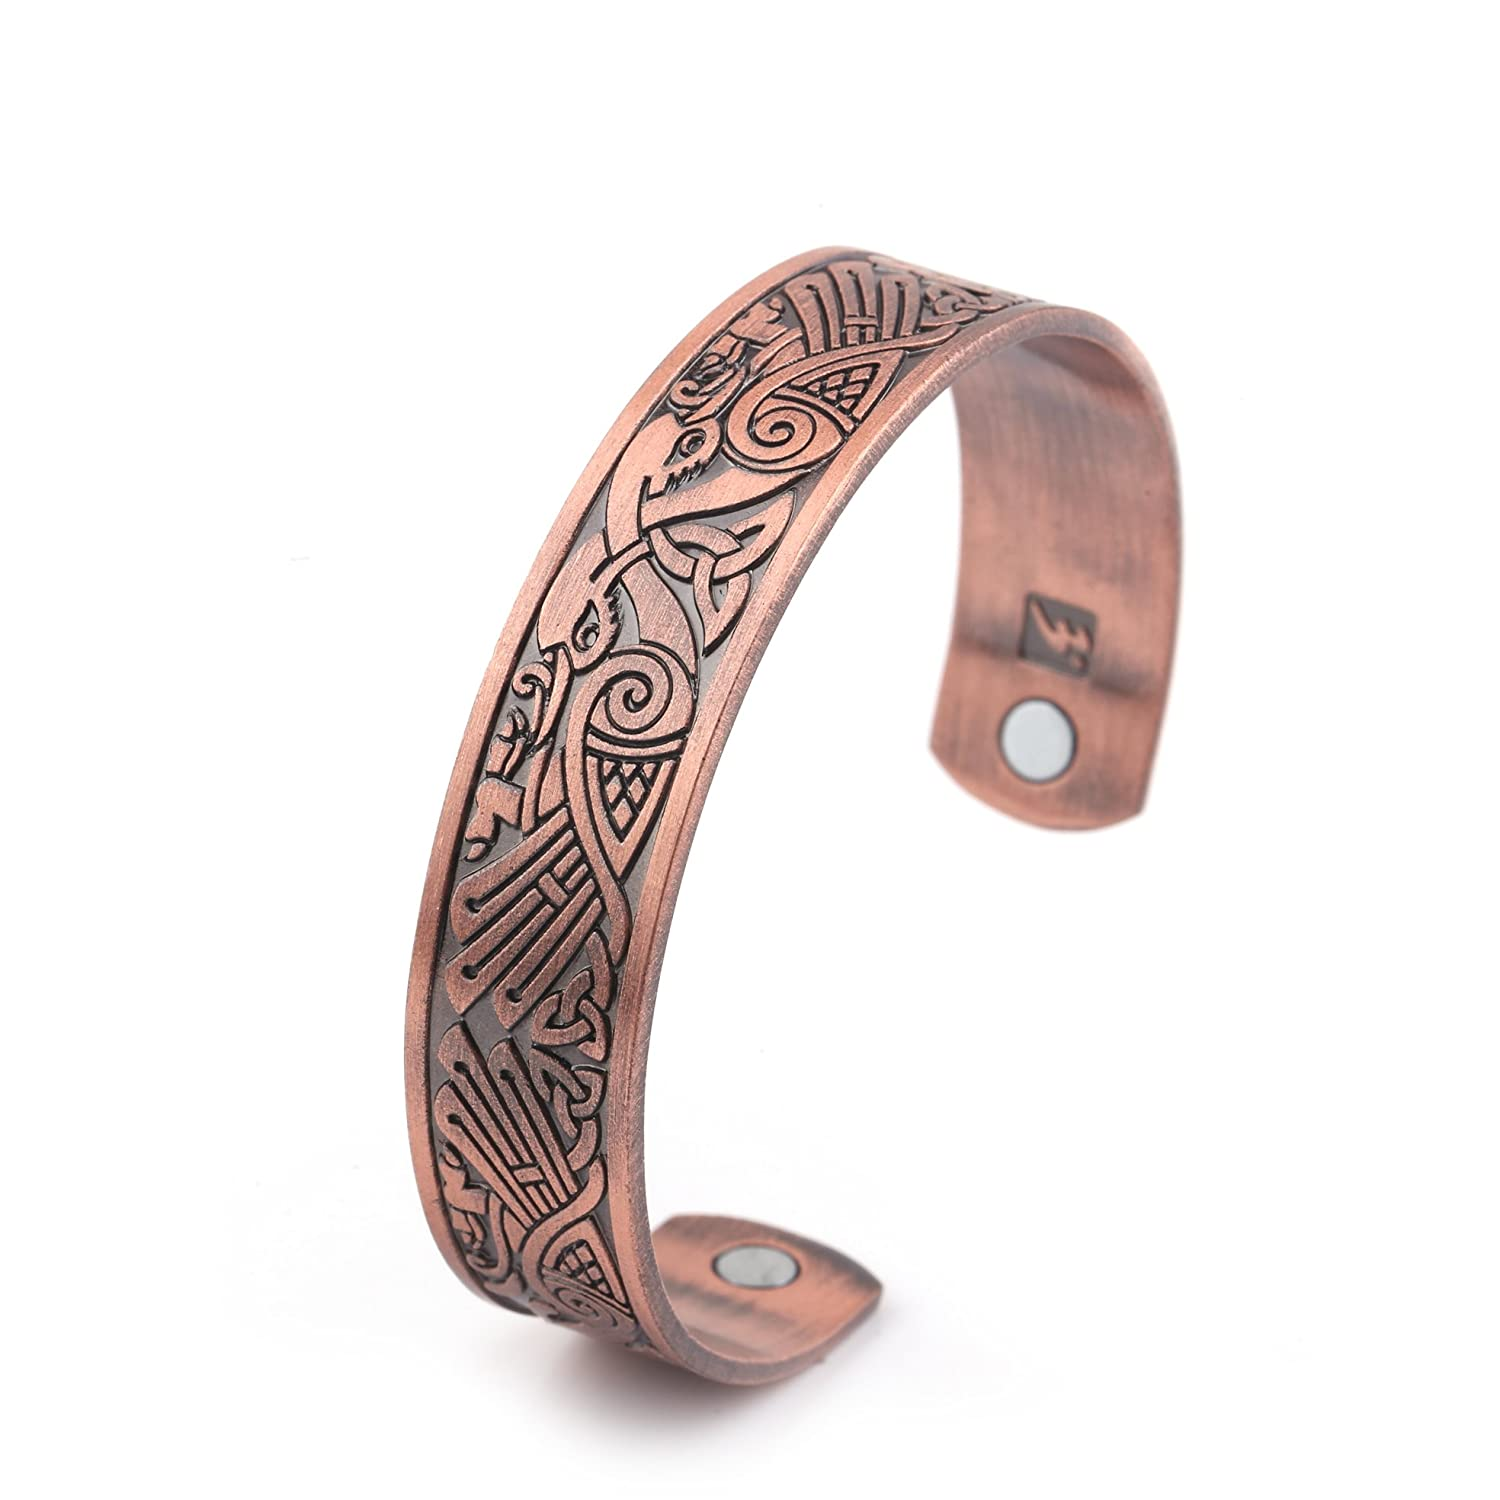 Health Care Magnetic Bracelet Viking Raven Cuff Bangle Irish Knotwork Birds Talisman Pagan Jewelry Qiju